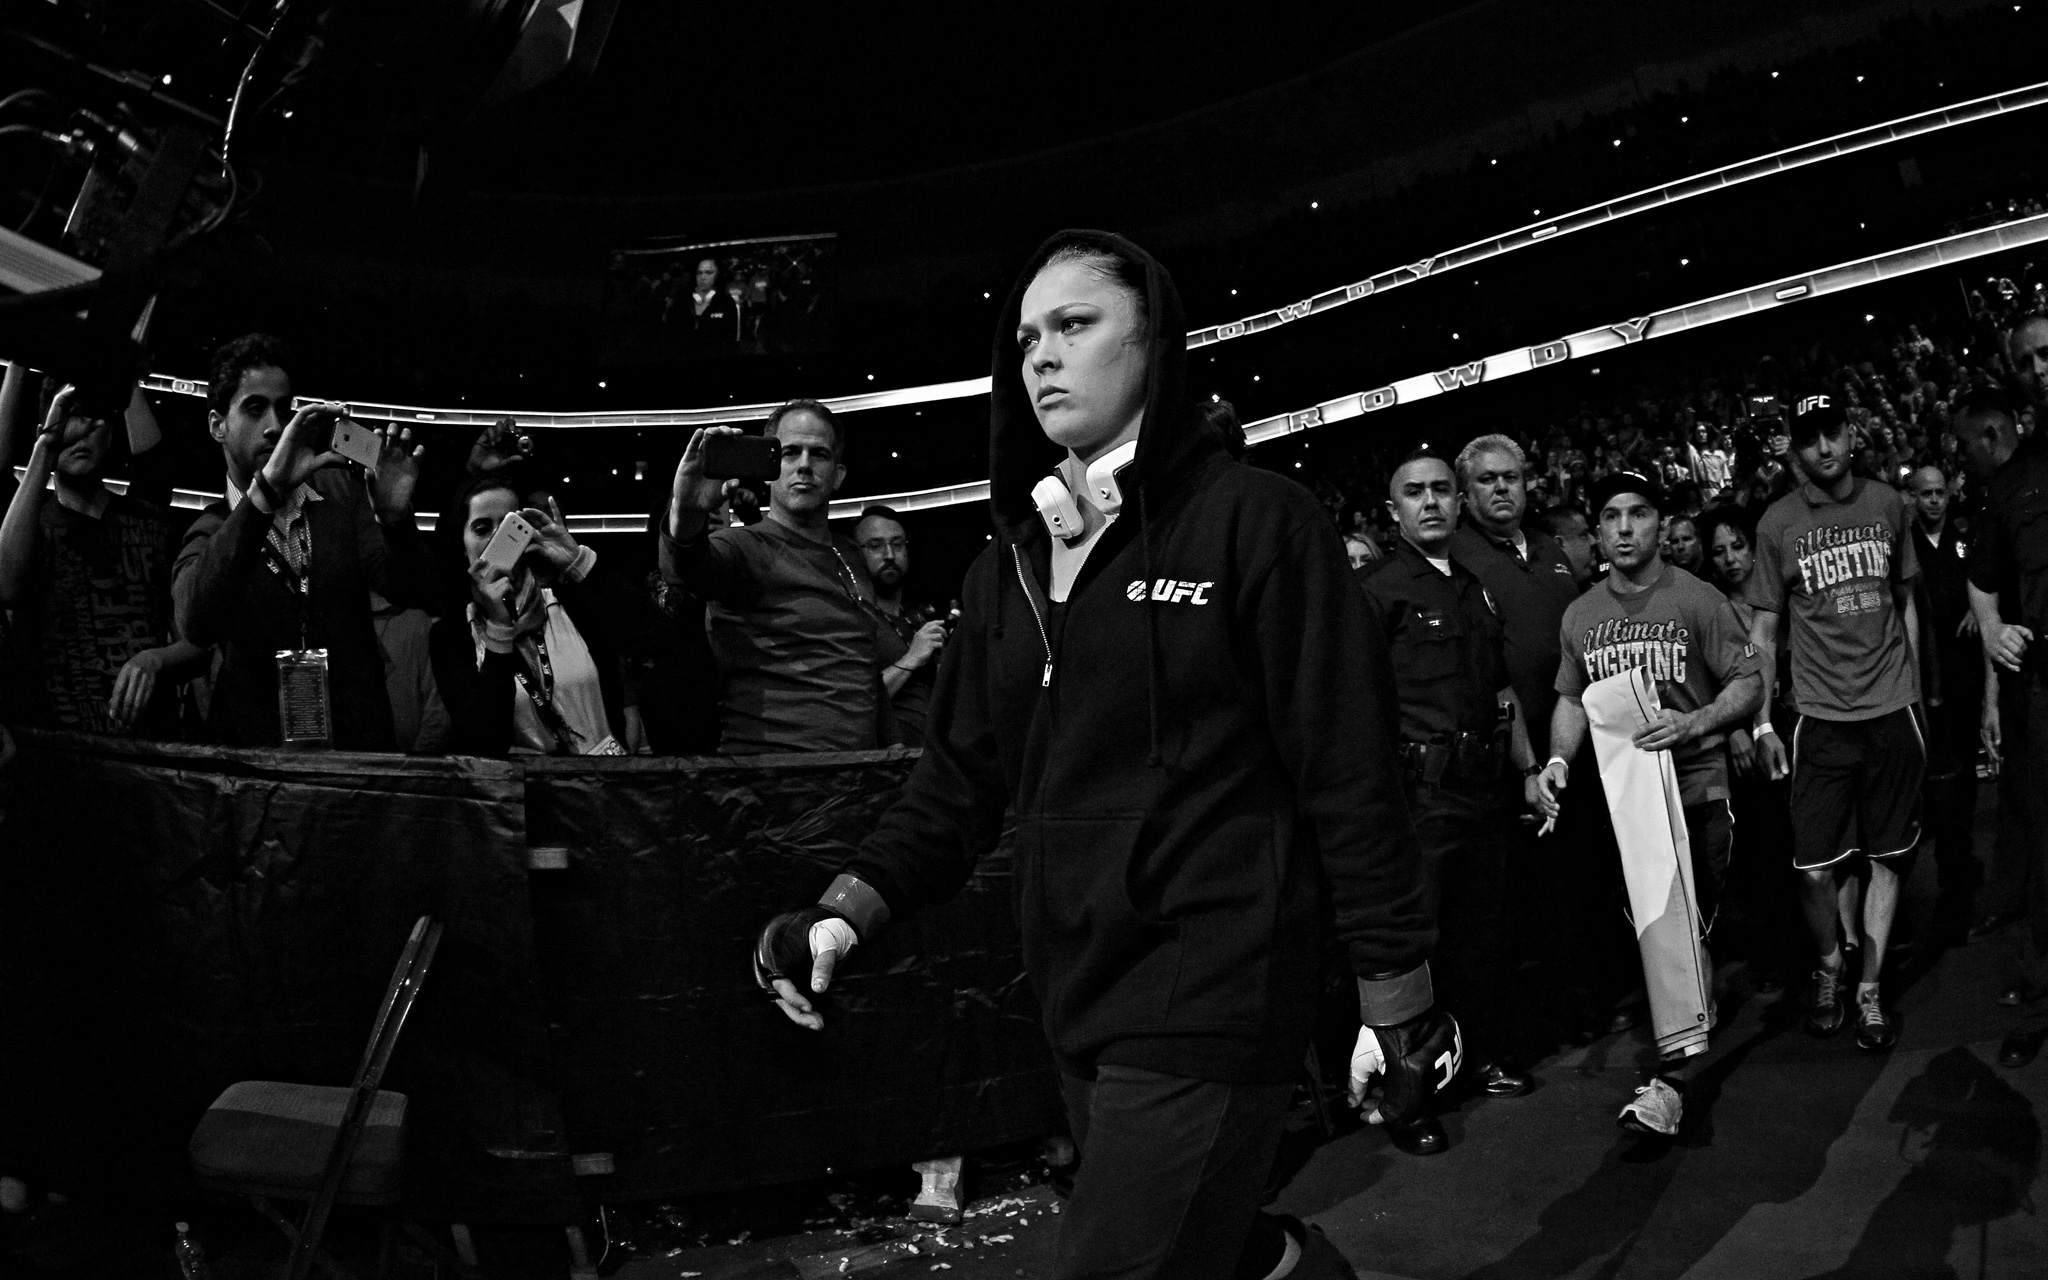 Conor Mcgregor Wallpaper Black And White: Ronda Rousey And Liz Carmouche